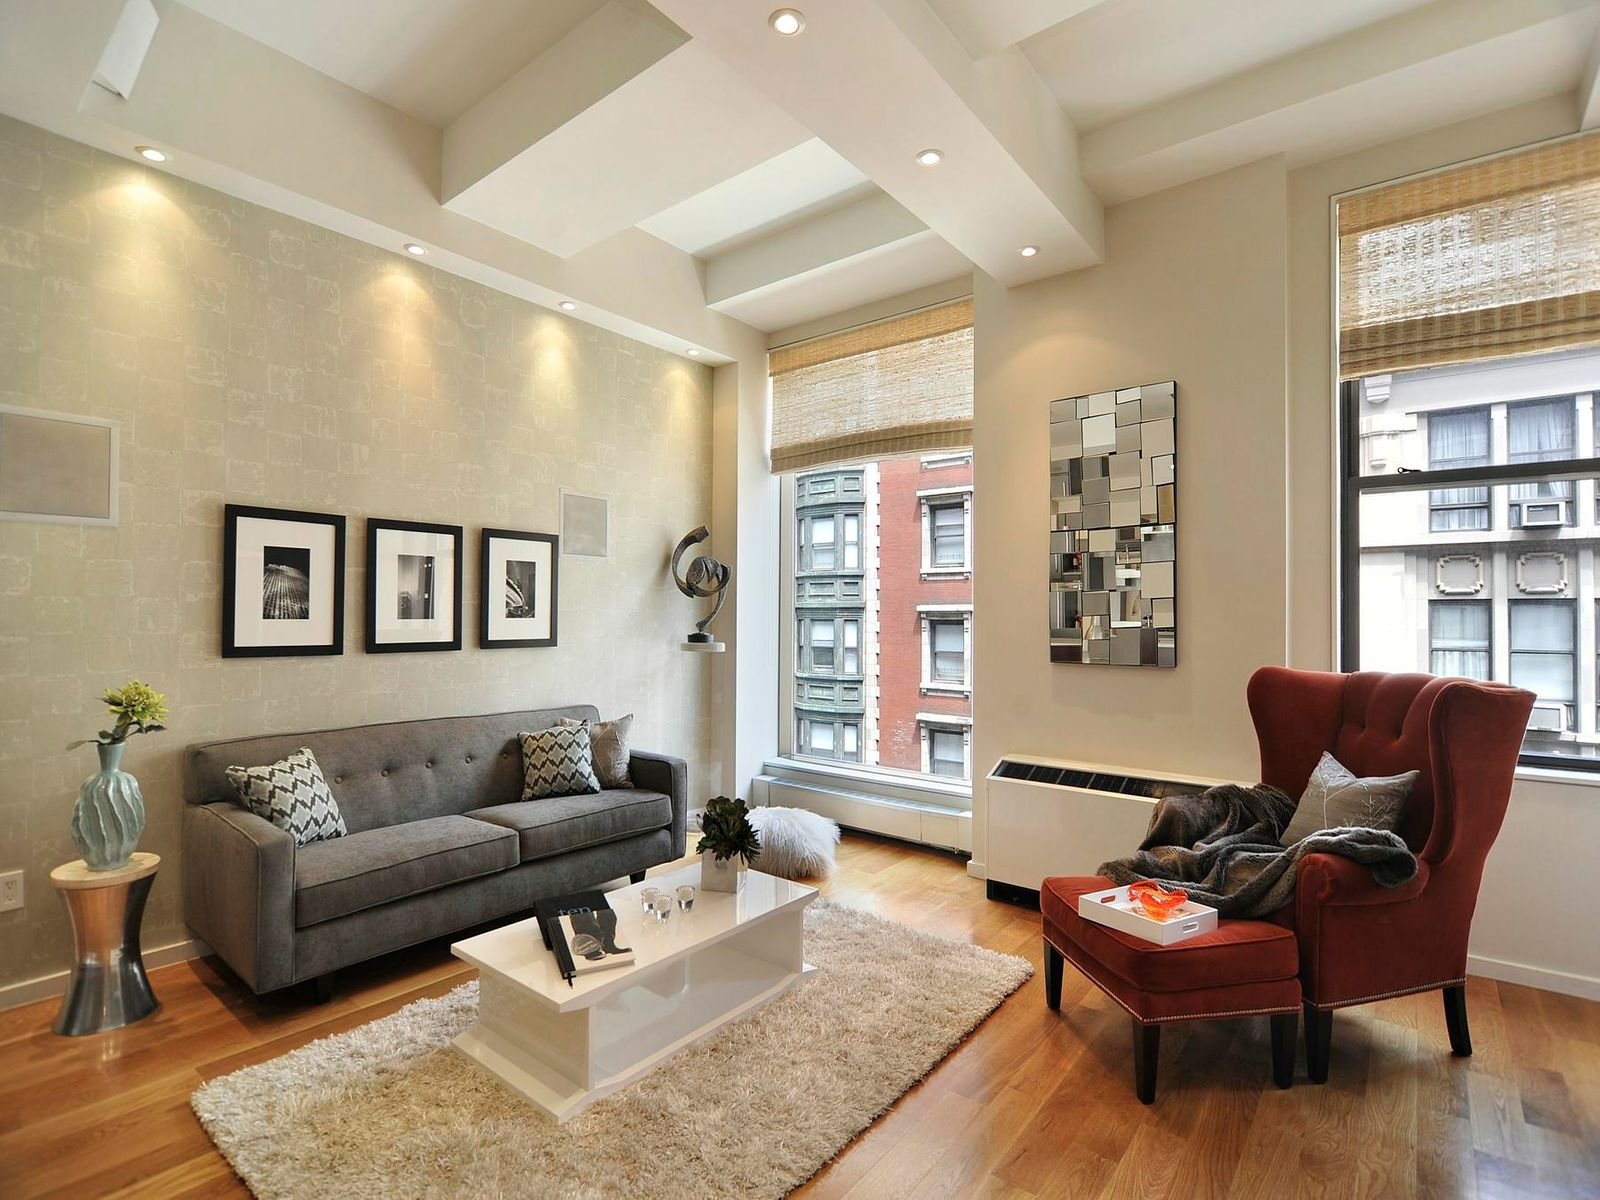 NoMad Boutique Condo Loft, New York NY Condominium - New York City Real Estate